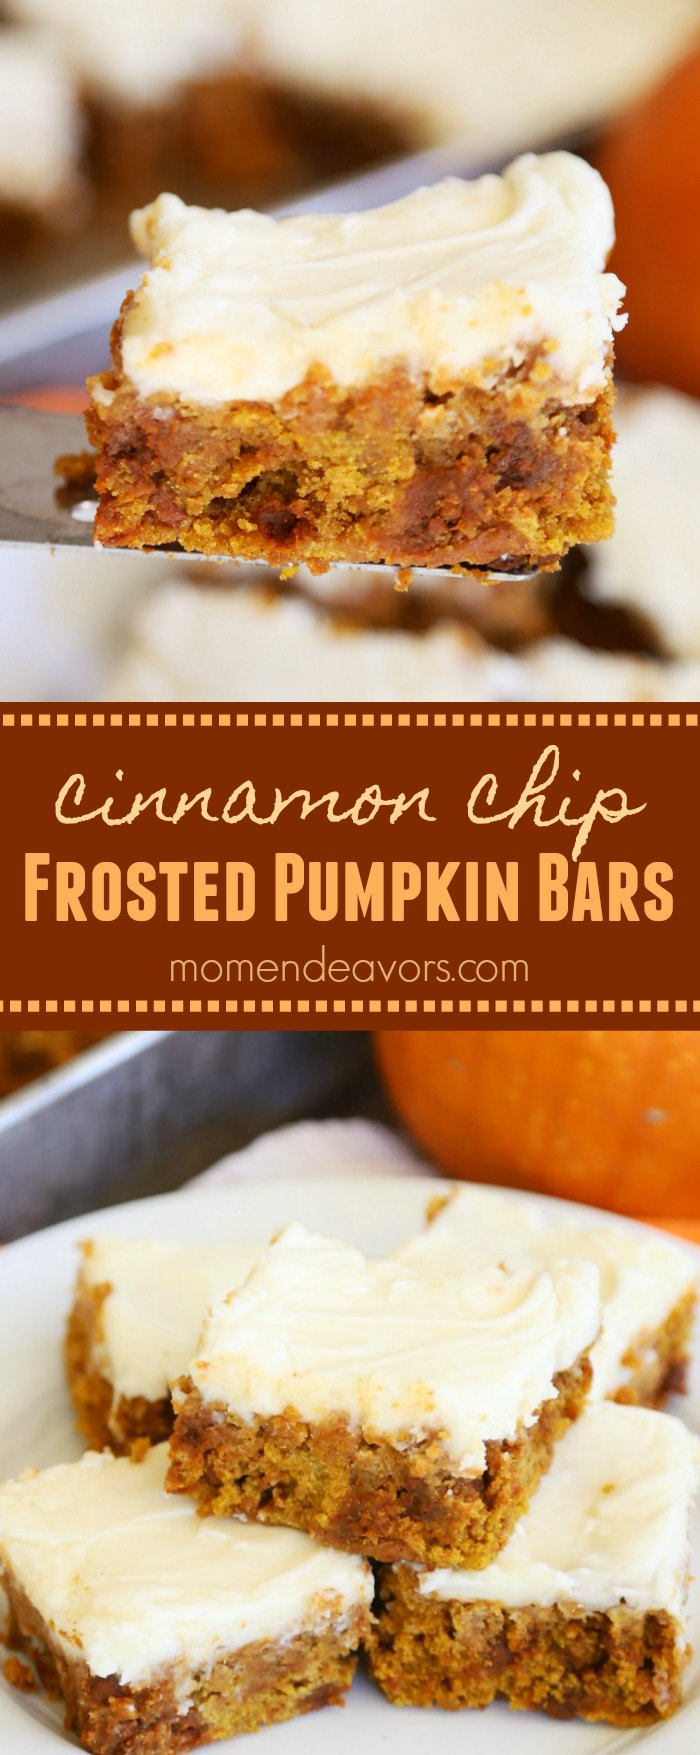 Easy Cinnamon Chip Frosted Pumpkin Bars